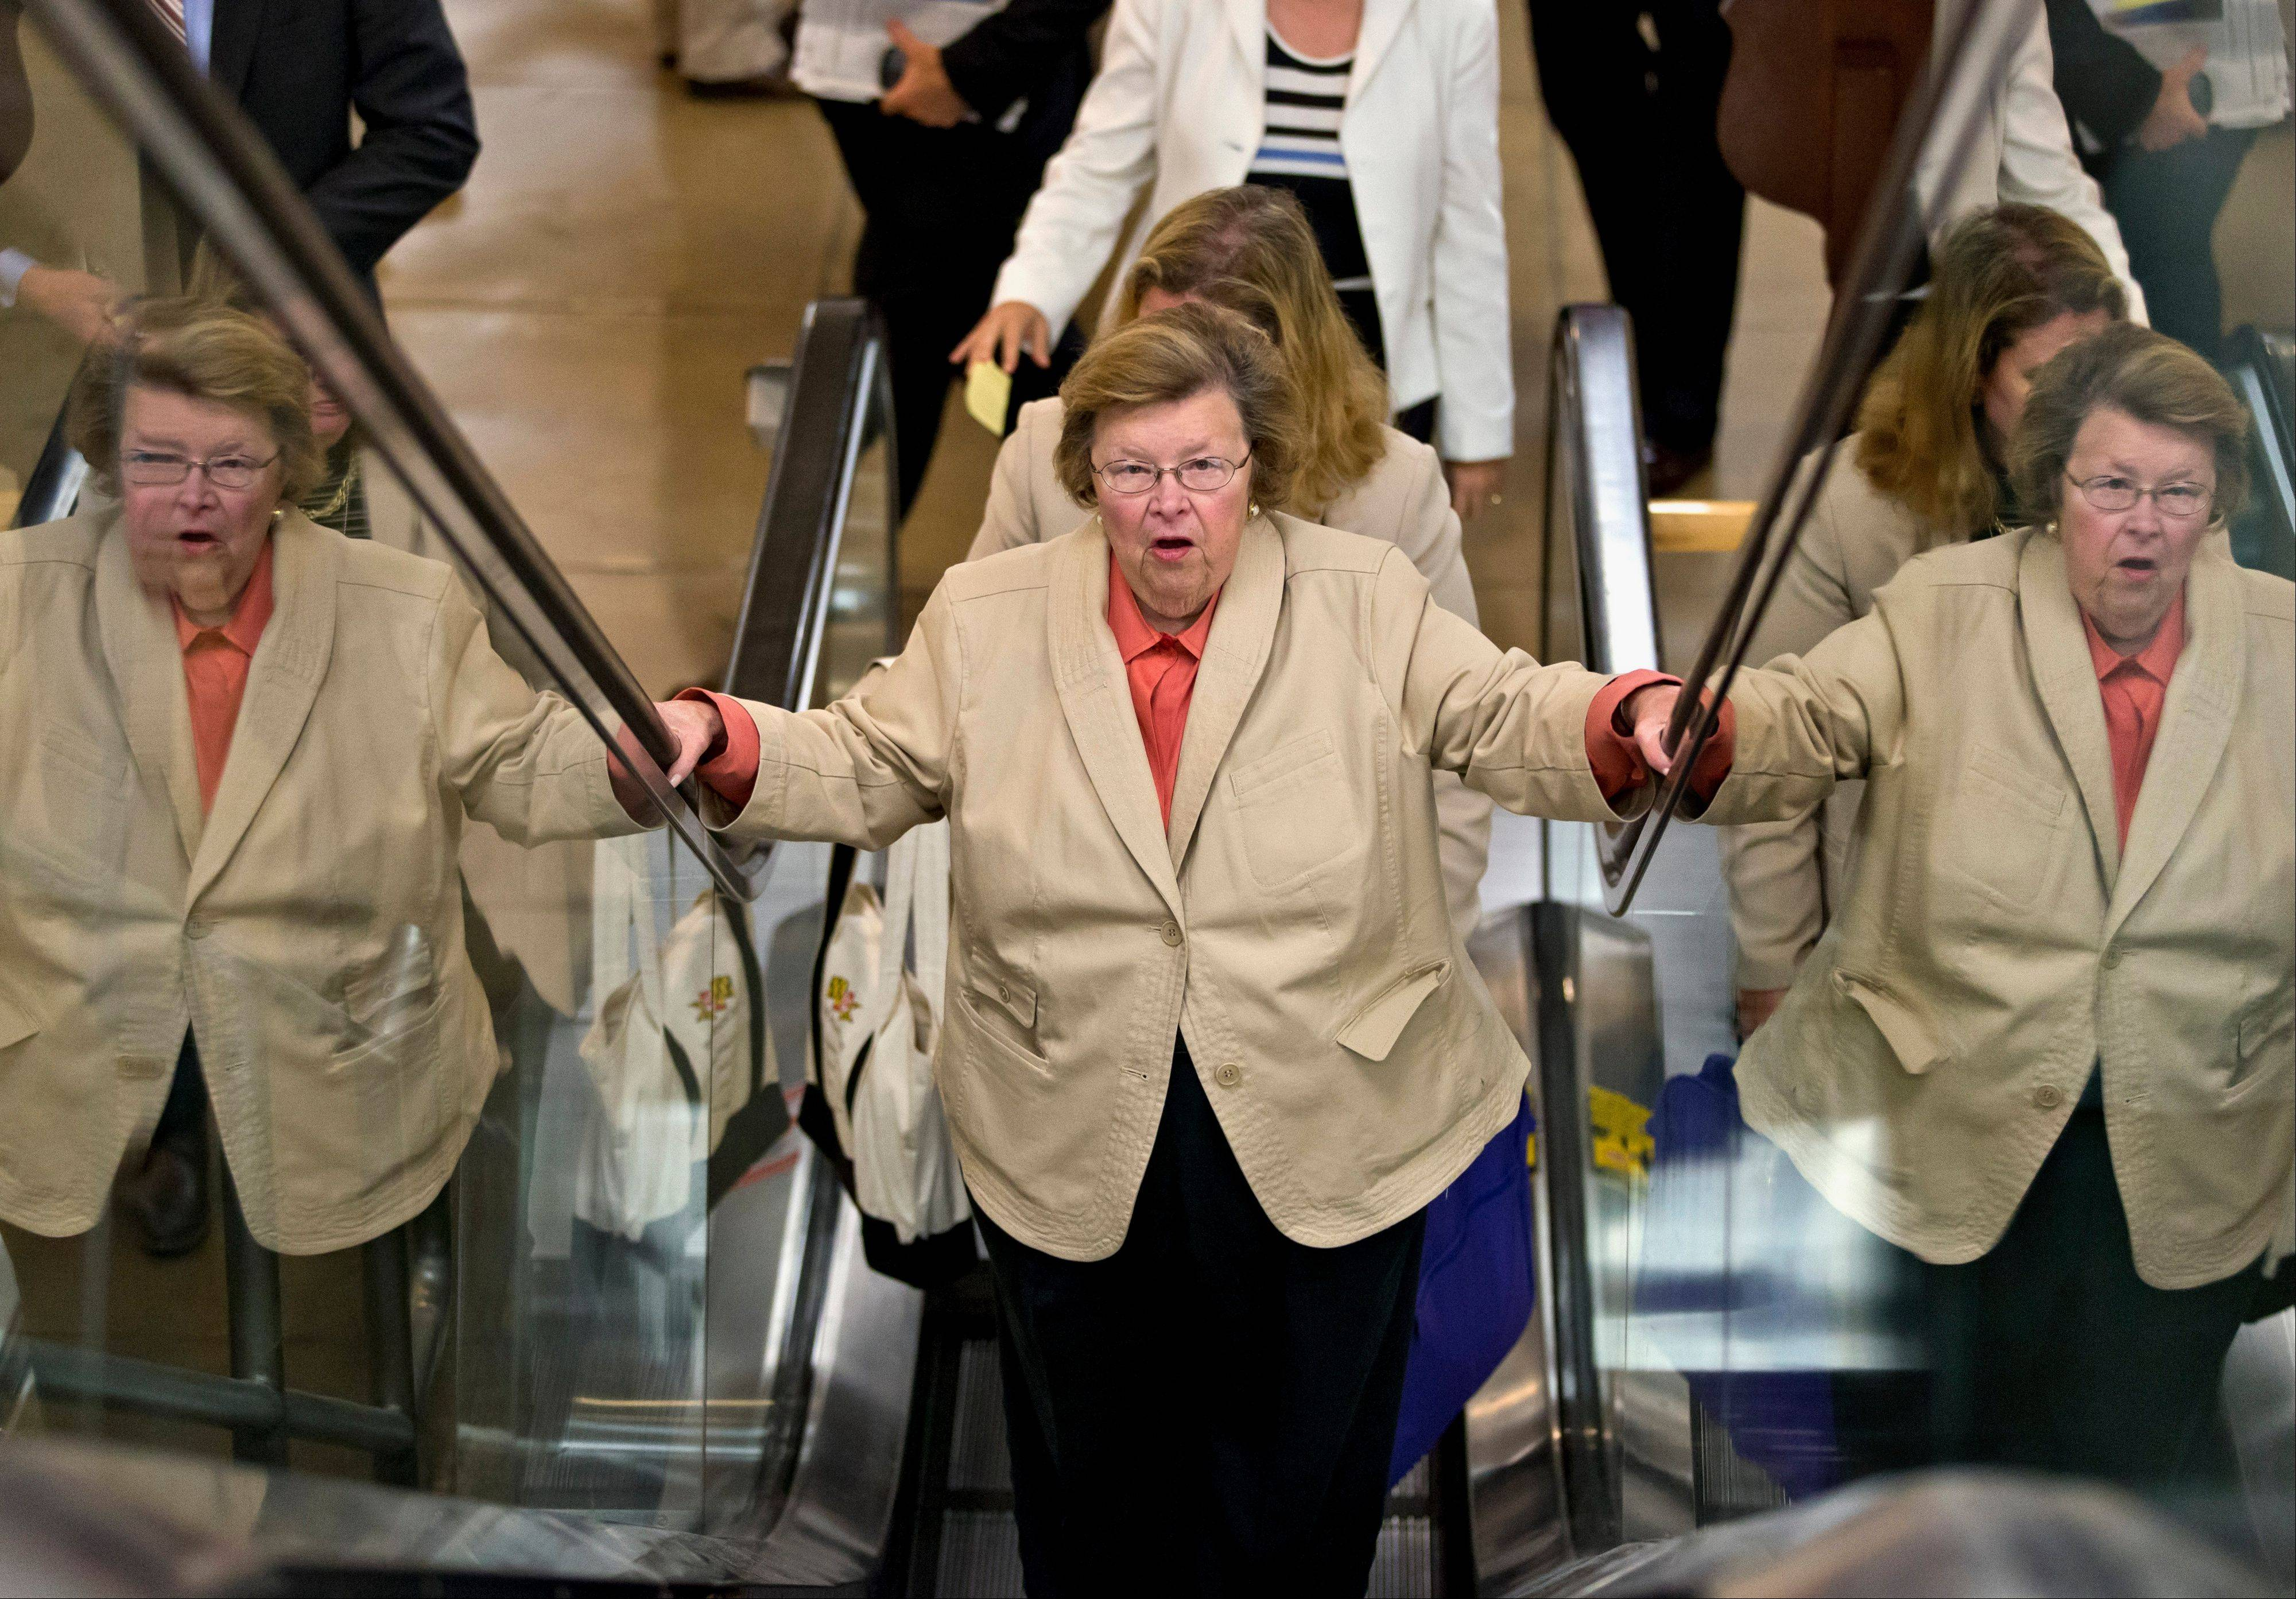 Senate Appropriations Committee Chair Sen. Barbara Mikulski, a Maryland Democrat, rides an escalator in the Capitol Wednesday, as senators rushed to the floor for a vote to end debate on the Democrats' plan to restore lower interest rates on student loans. Lawmakers failed to muster the necessary 60 votes to overcome a procedural hurdle.